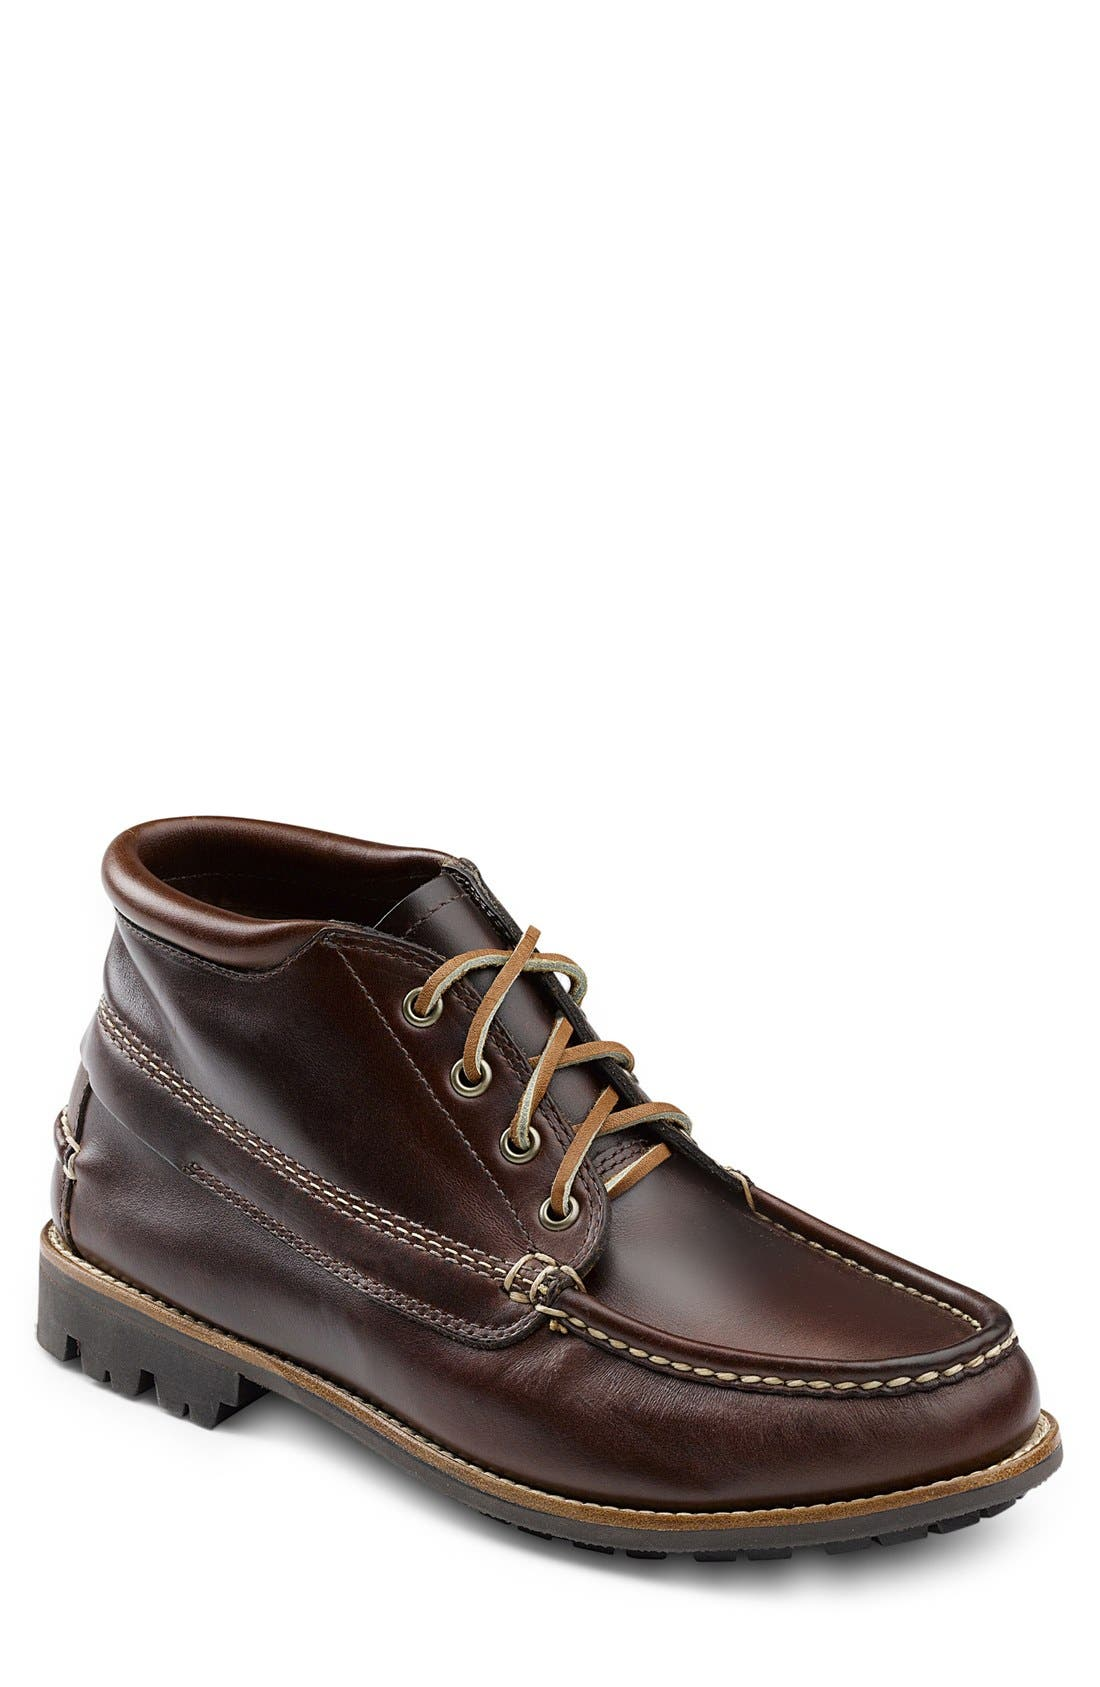 'Abbott' Chukka Boot,                             Main thumbnail 2, color,